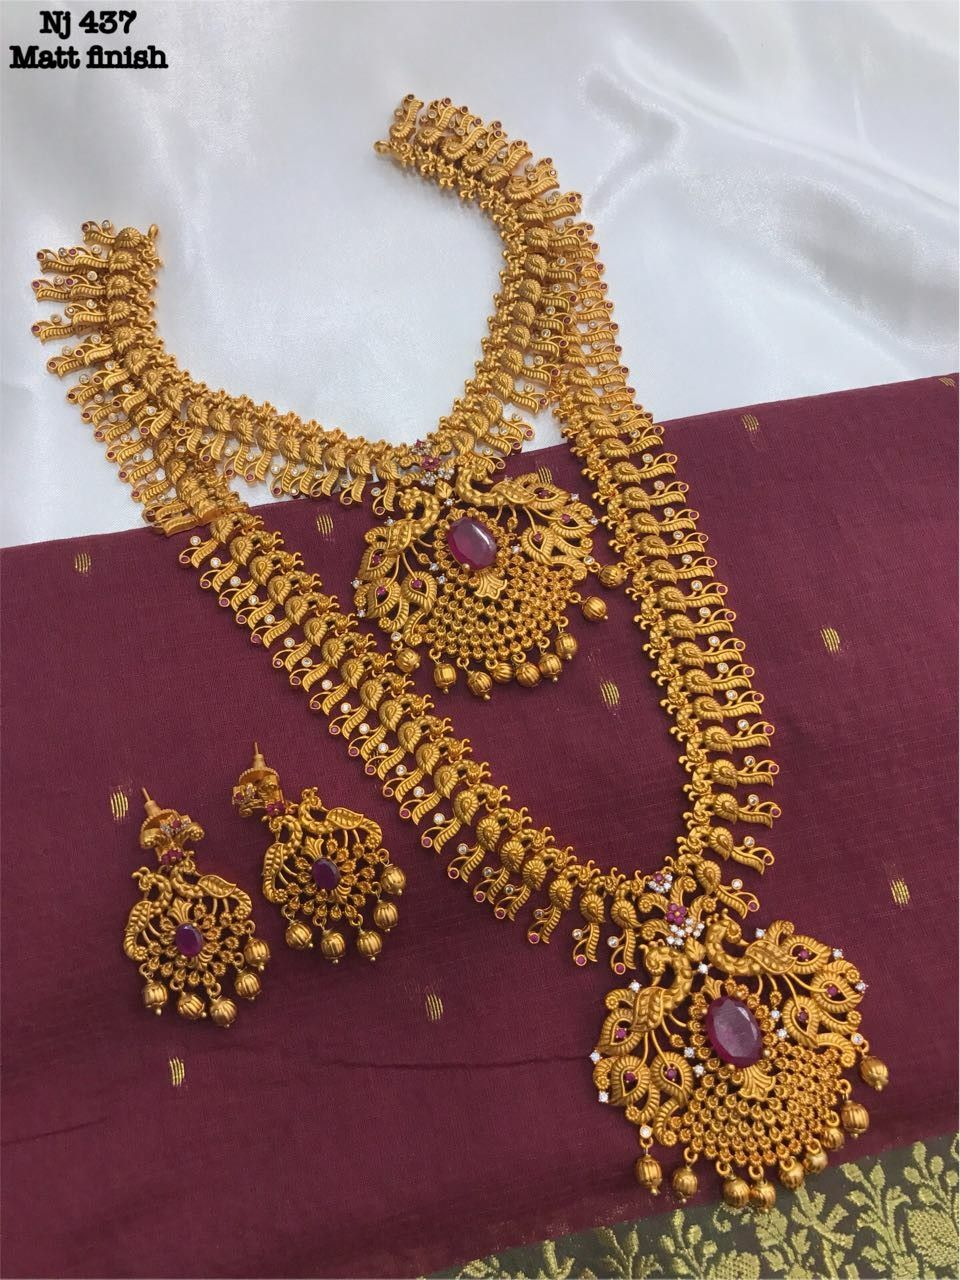 I Want This How Much It Cost Bridal Gold Jewellery Designs Gold Jewelry Simple Necklace Bridal Gold Jewellery